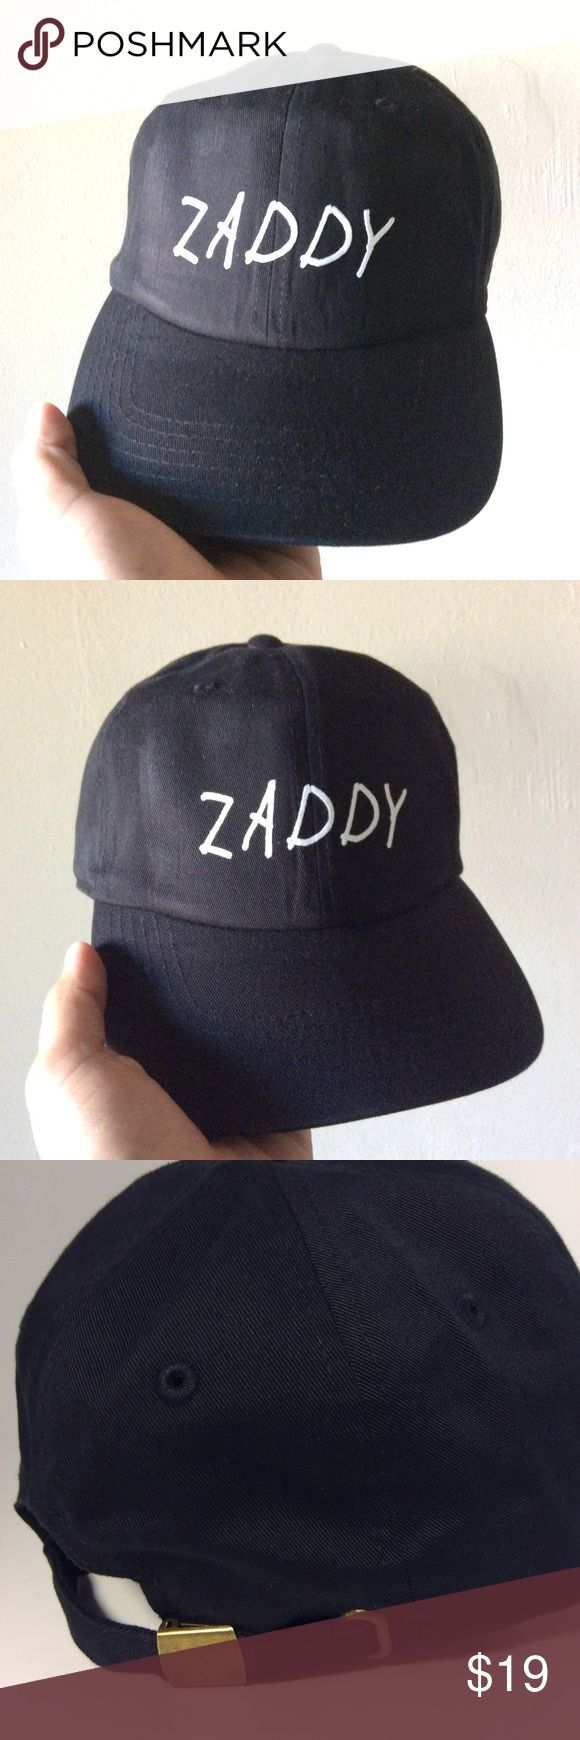 Zaddy Dad Hat NWT Black, adjustable hat with tuck pocket NEW UNISEX___Ignore tags: huf, weed, marijuana, kush, obey, stussy, dope, trill, Blvck, boy london, paris, joggers,  trap style, rave, rare, huf, blvck fashion, trill, pipe, dabber, glass, sad, me, goth, goth girl, woes, the six, 6ix, ovo, blvck, Brooklyn, London, pikachu, 6 God, glitter, naps, mobb, asap, long style, Ovo, snapback, cap Accessories Hats